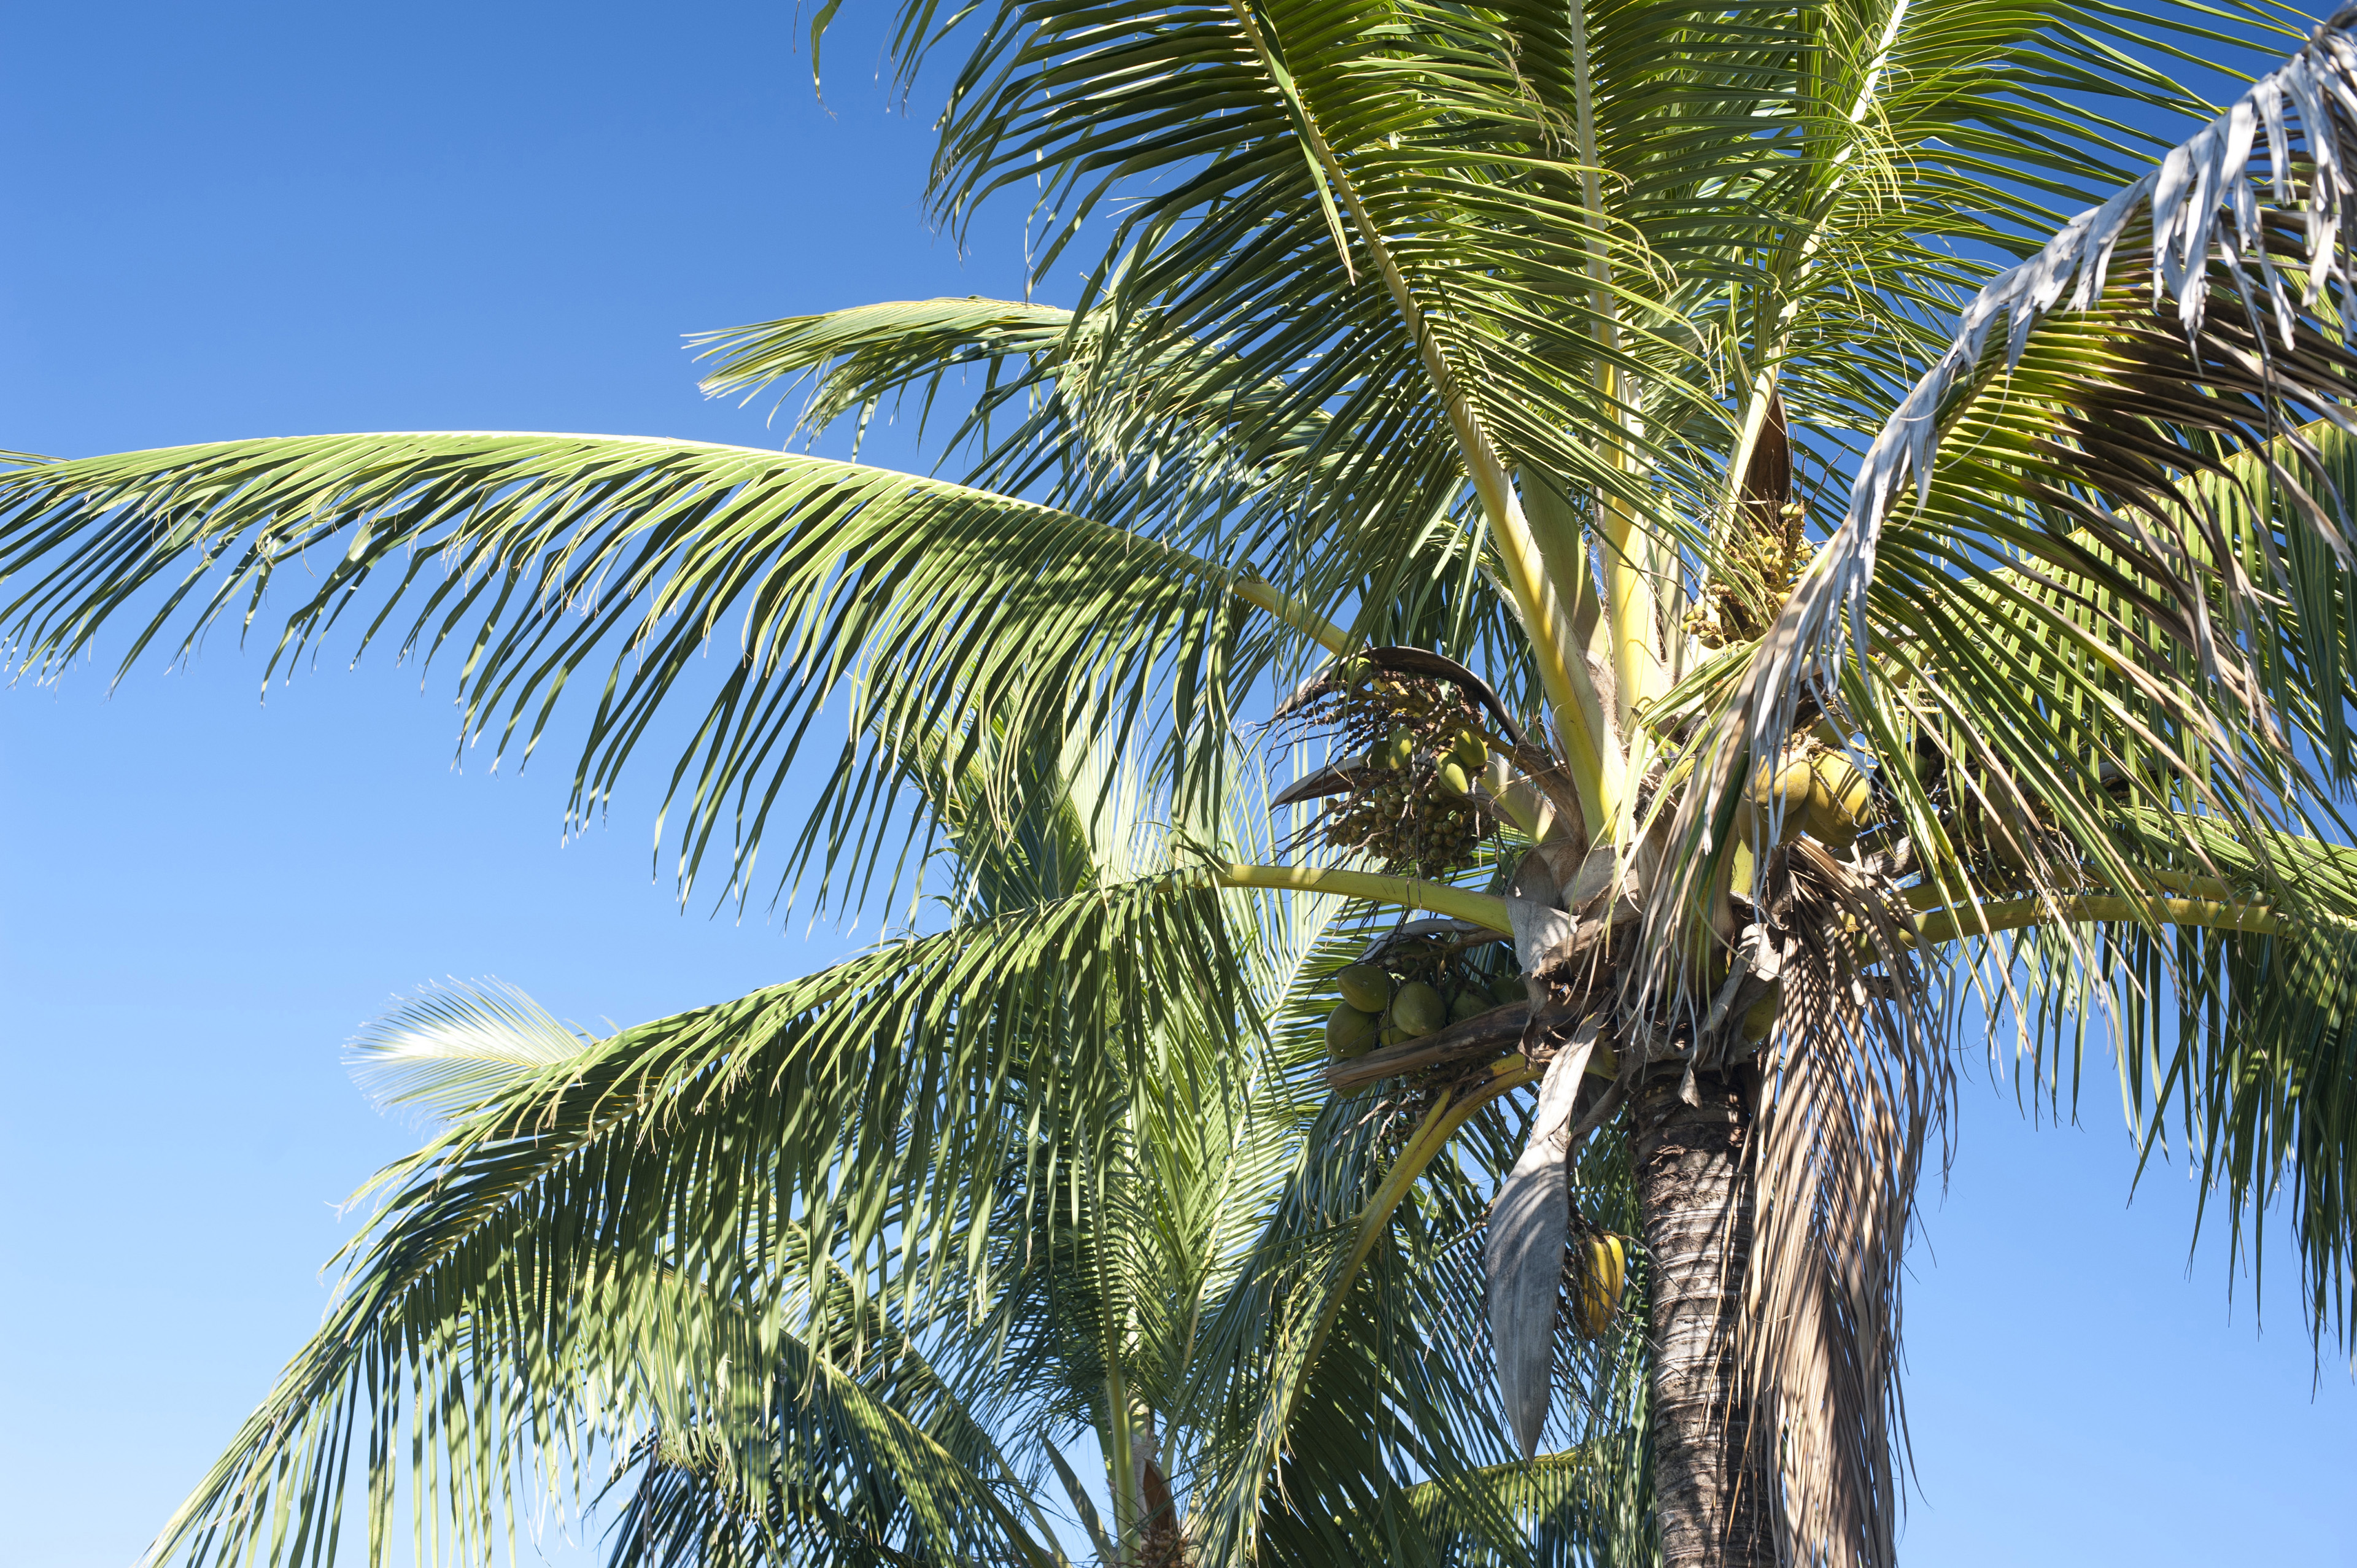 Crown of a coconut palm with its green fronds spreading out above ripening fruit against a clear sunny blue sky, symbolic of tropical summer vacations and travel